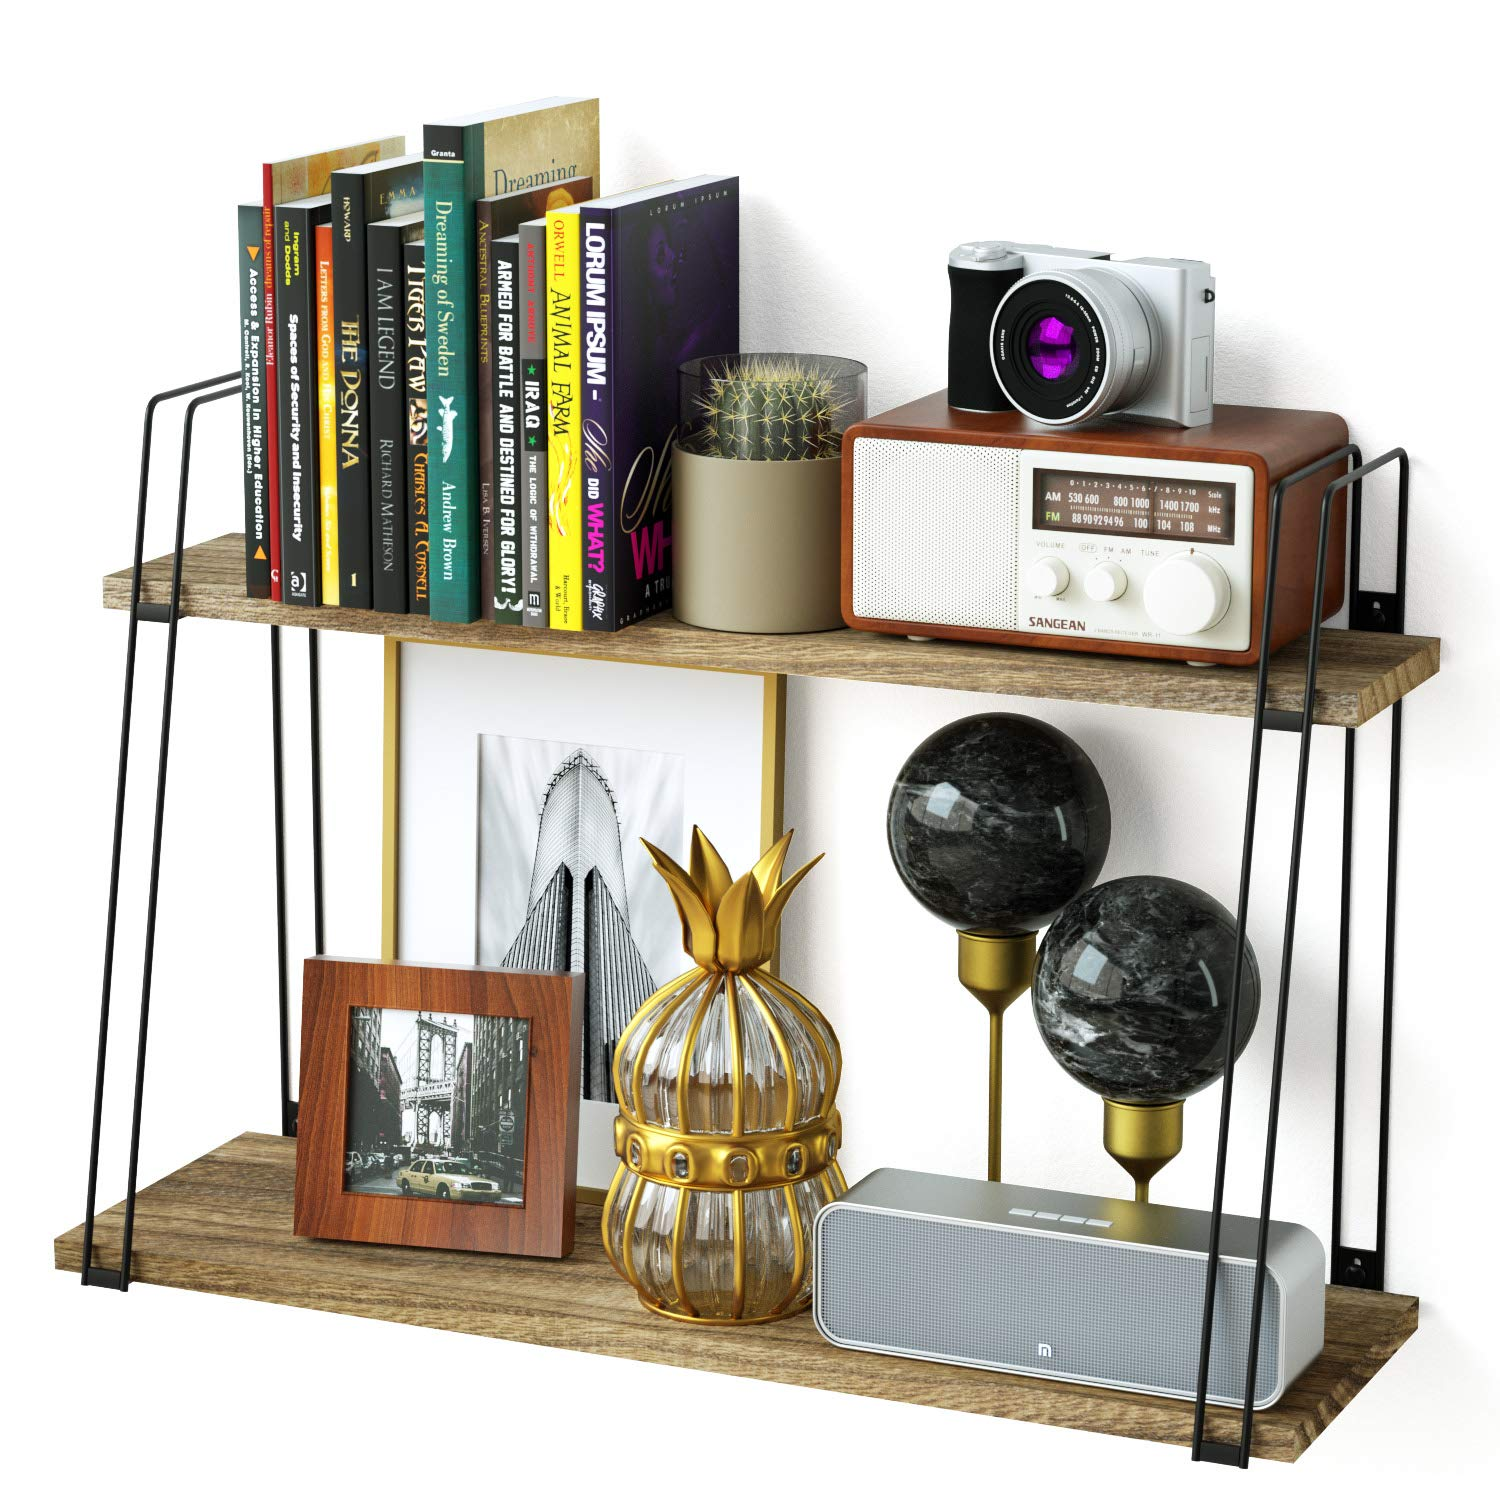 . SRIWATANA Rustic Floating Shelves  2 Tier Wood Wall Shelves with Superior  Bearing Capacity for Bedroom  Living Room  Dining Room and More